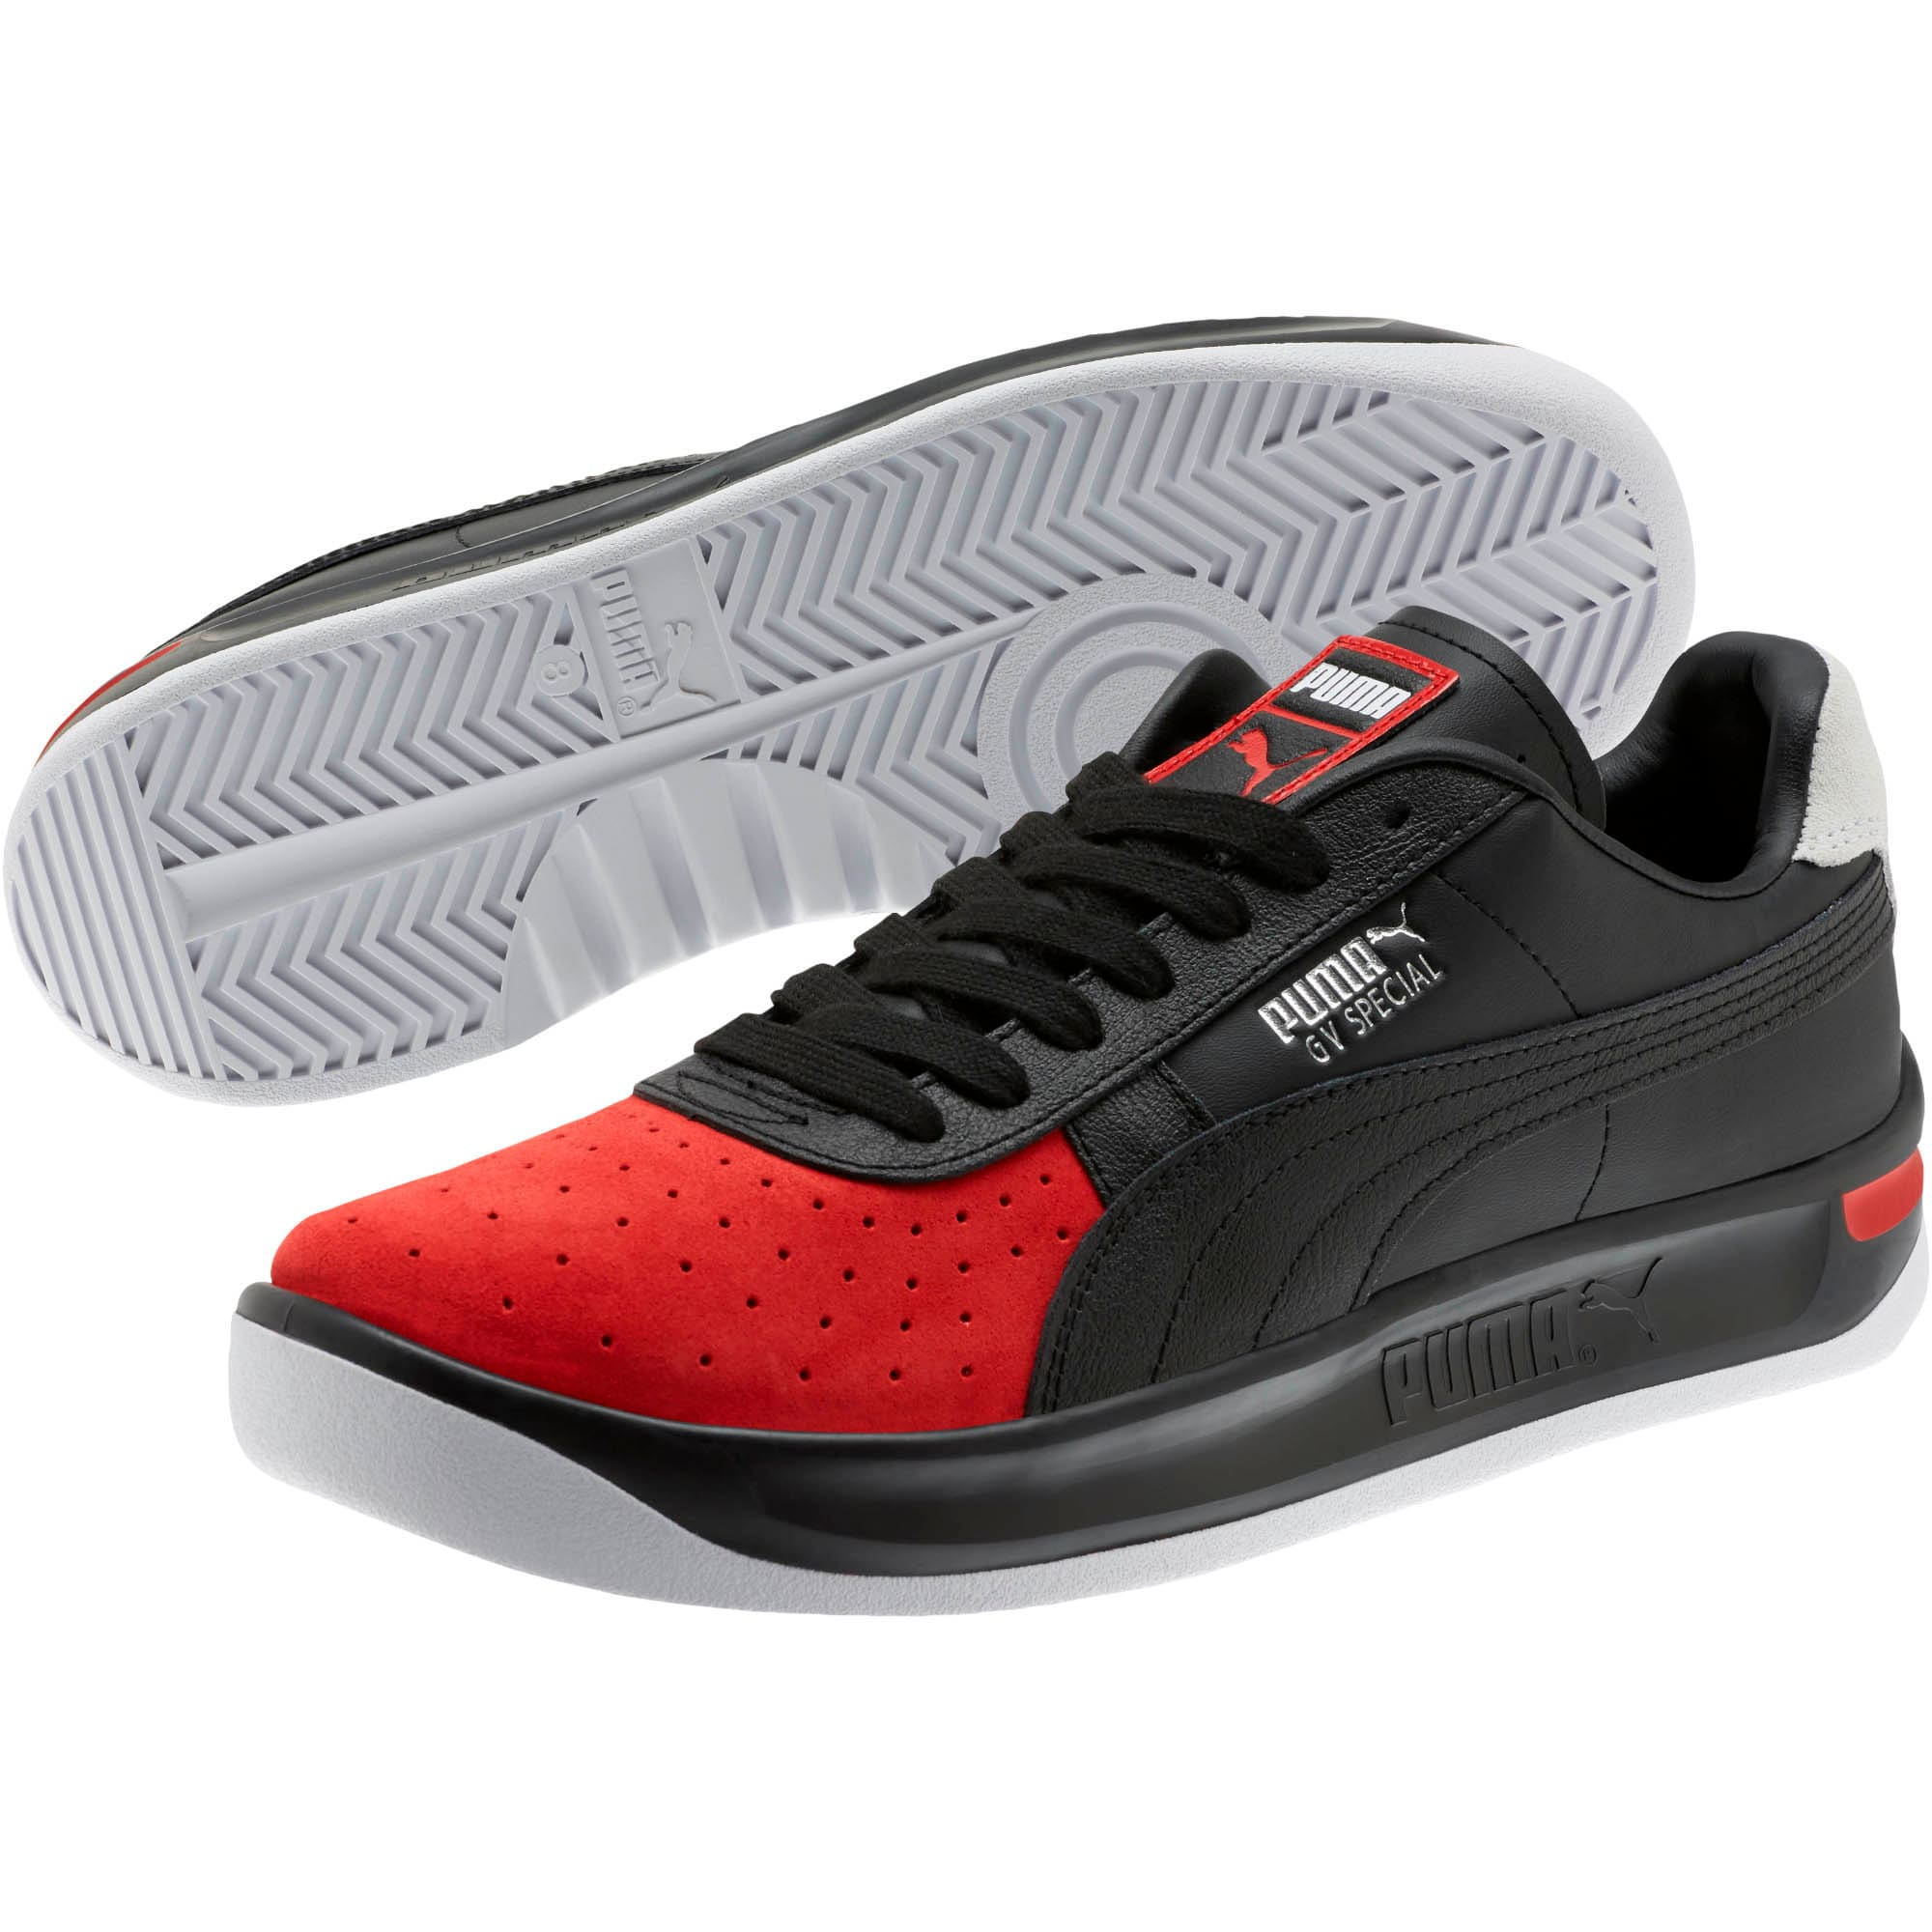 Thumbnail 2 of GV Special Speedway Men's Sneakers, Puma Black-High Risk Red, medium